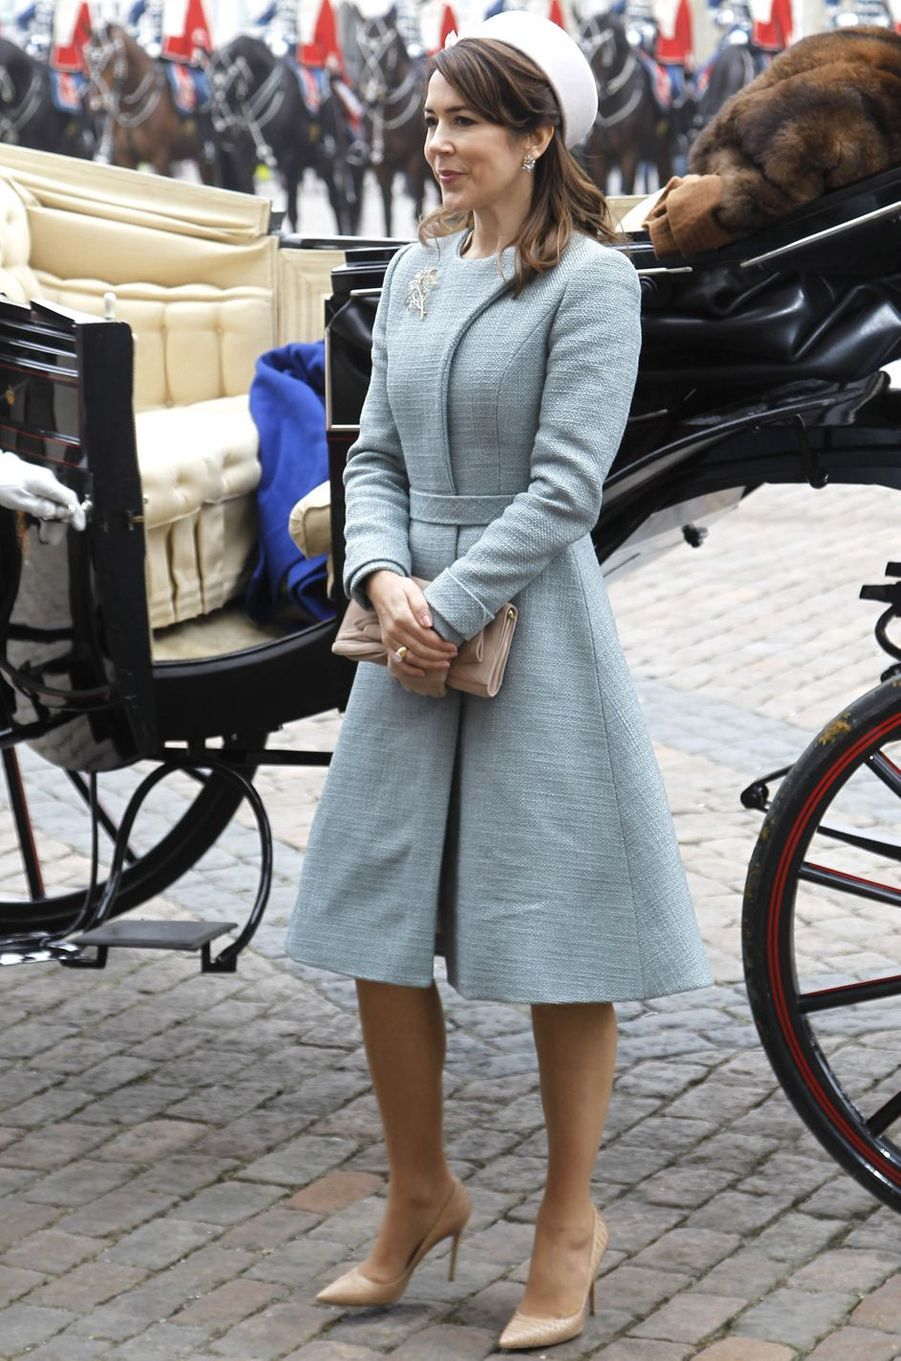 La princesse Mary de Danemark à Copenhague, le 28 mars 2017